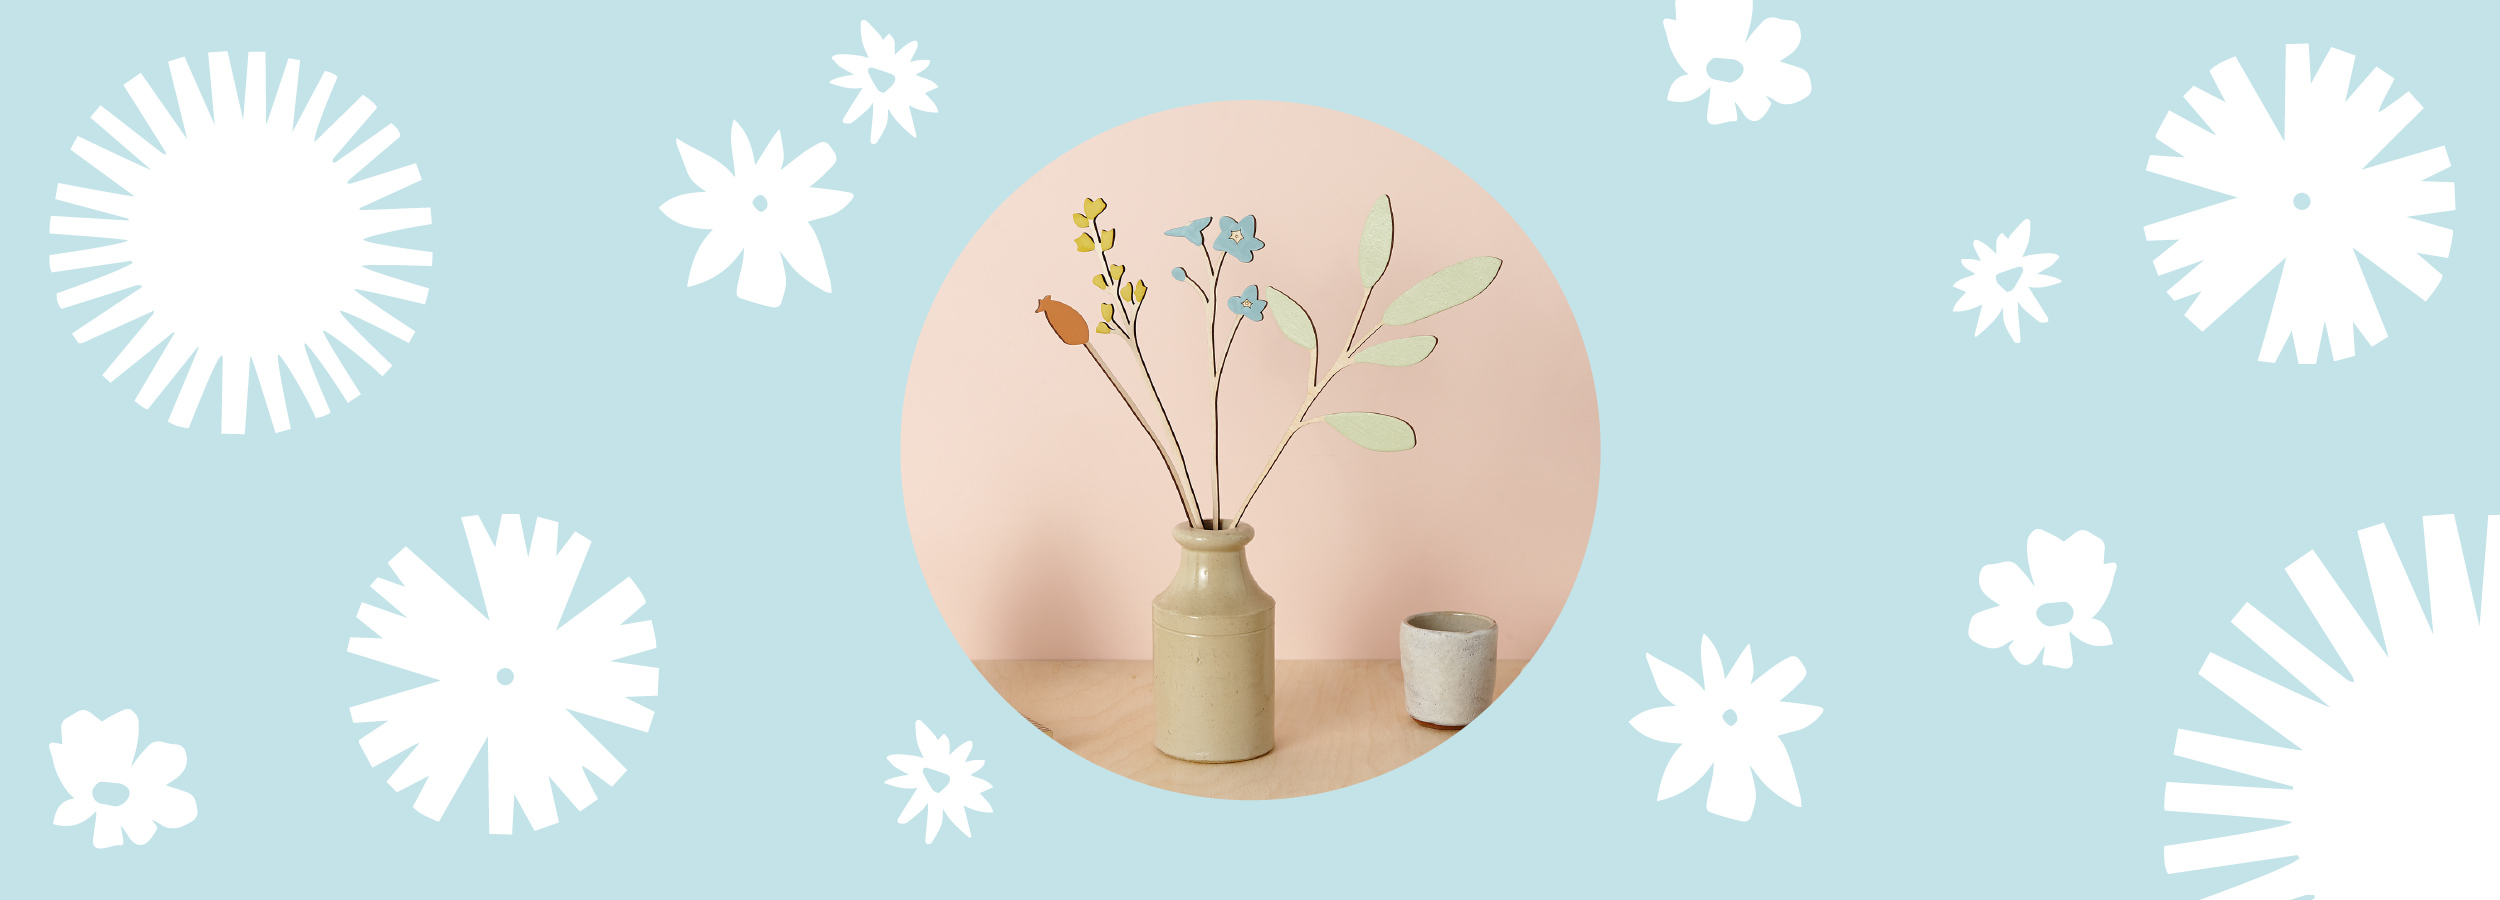 Anna_Wiscombe_Wooden_Wares_Spring_Forget-Me-Not_Flower_Set_Banner.jpg